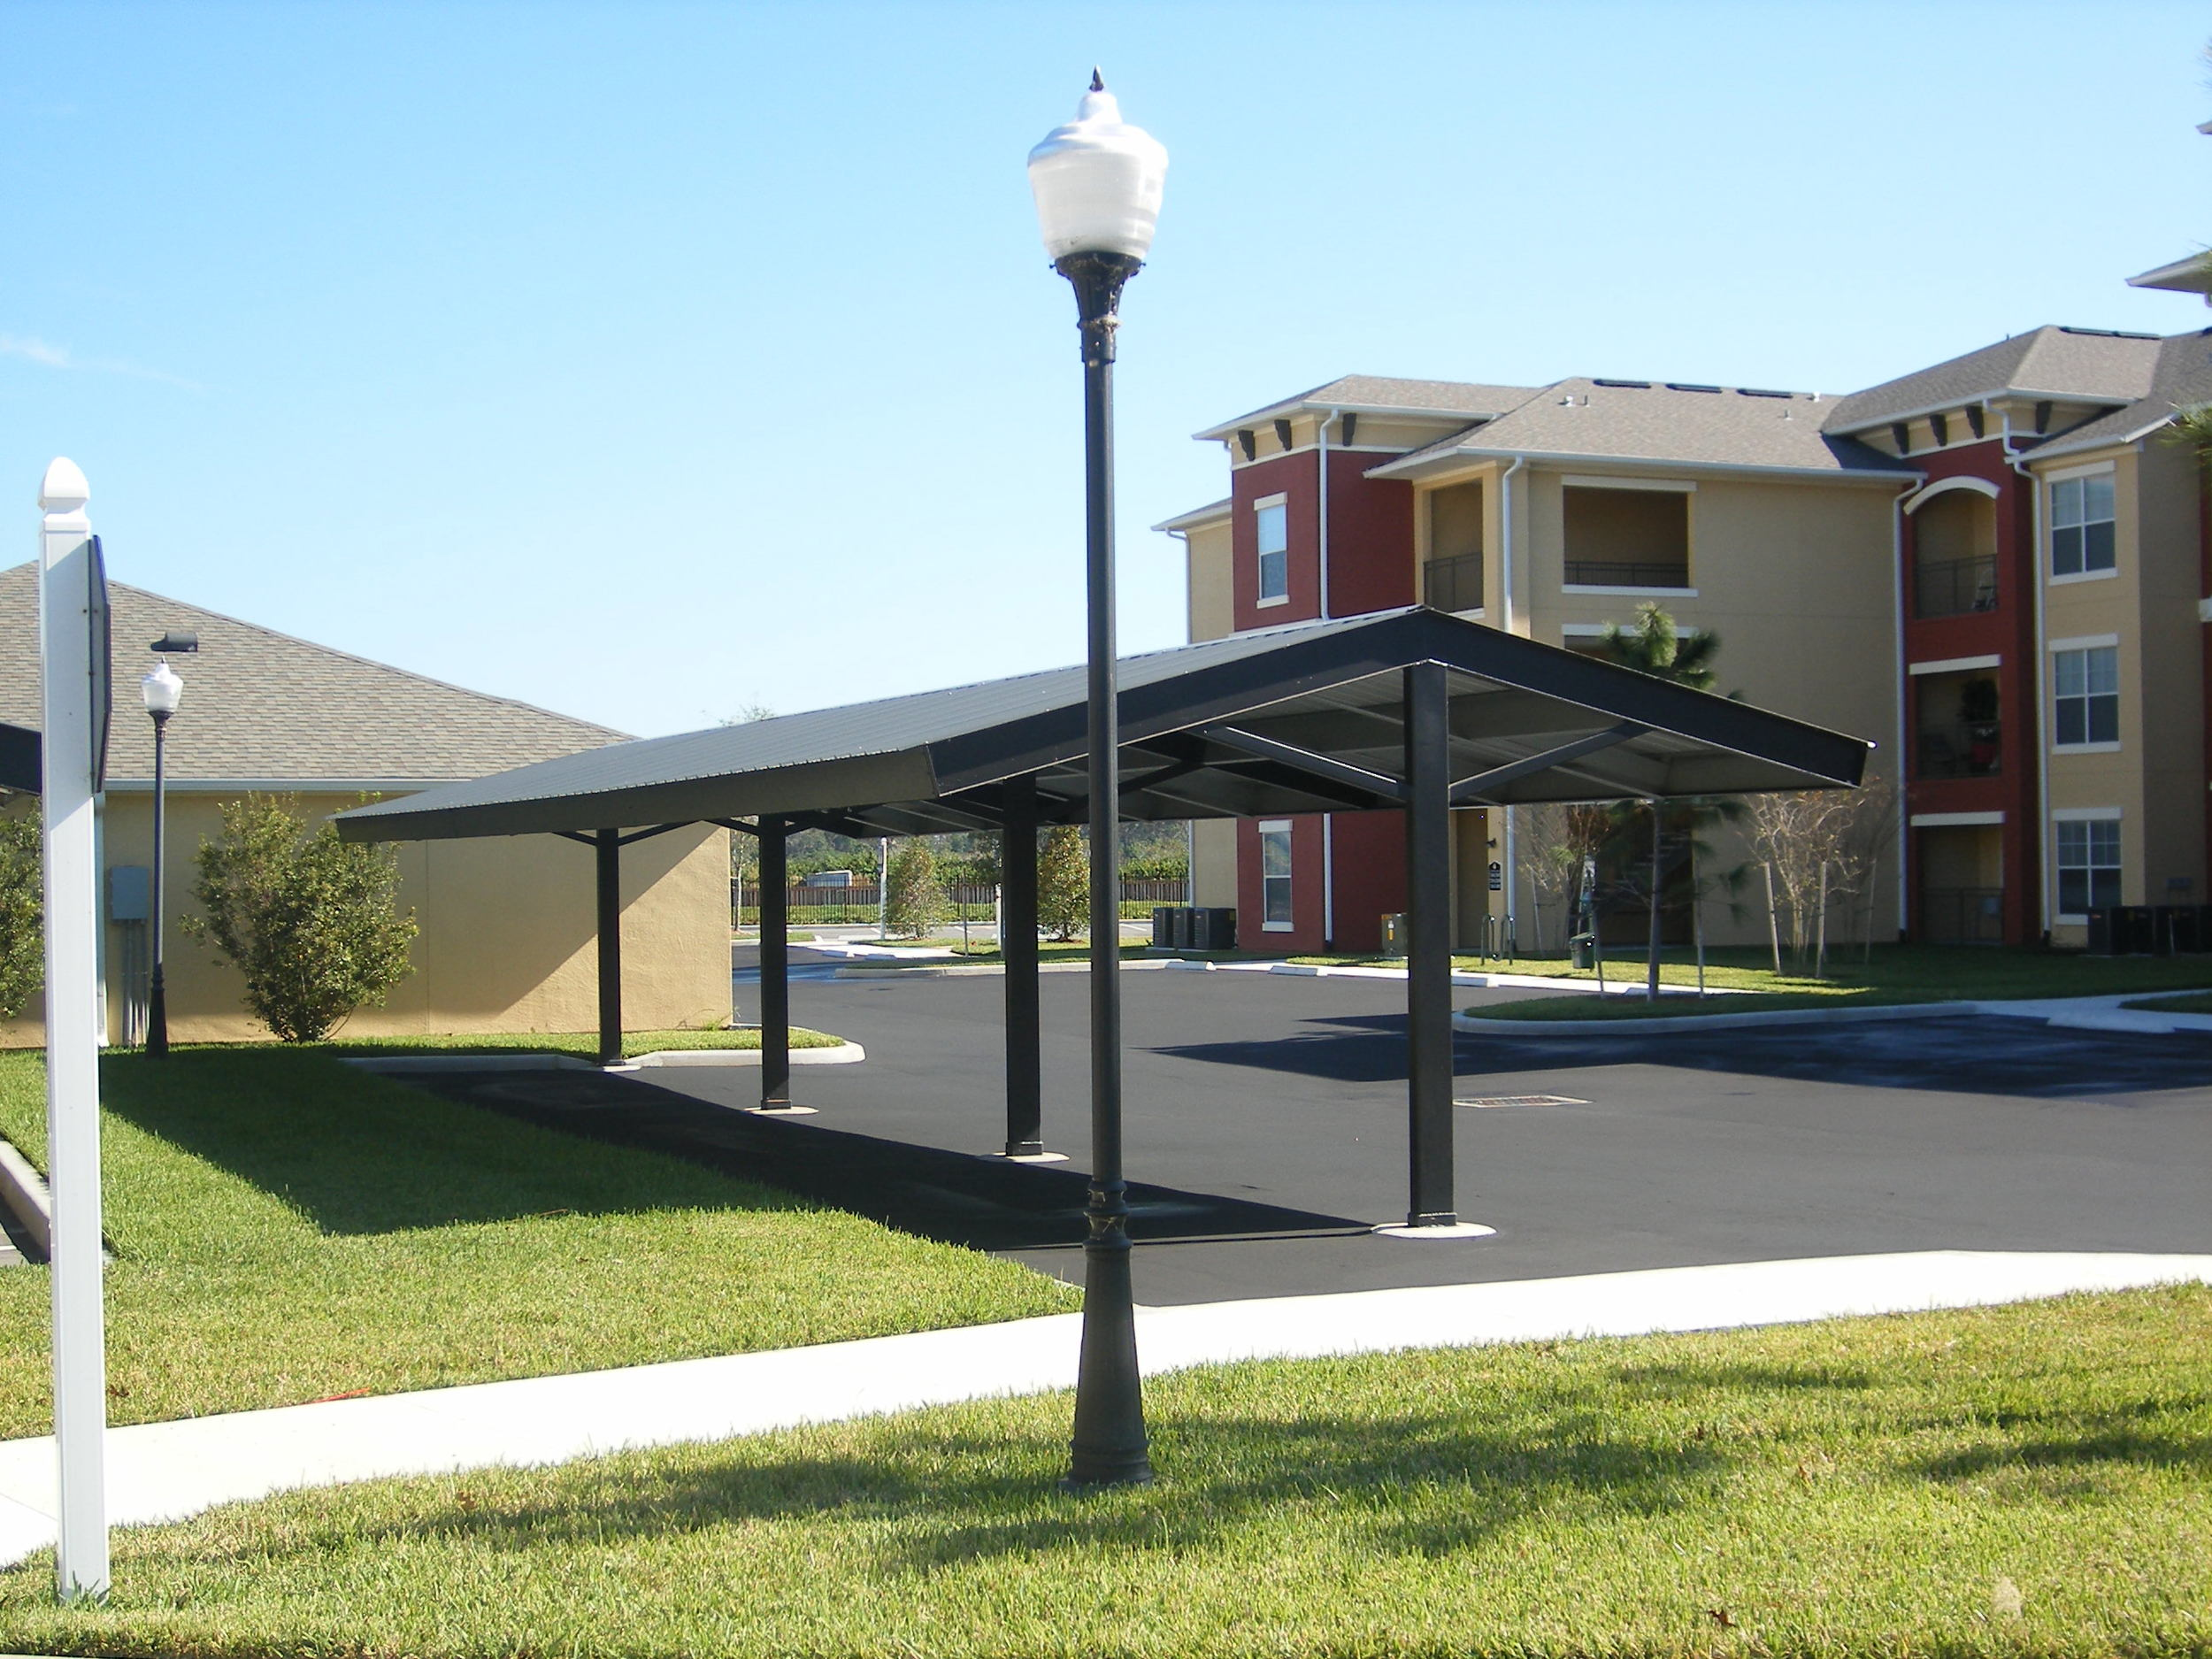 Gable Carport 2.JPG